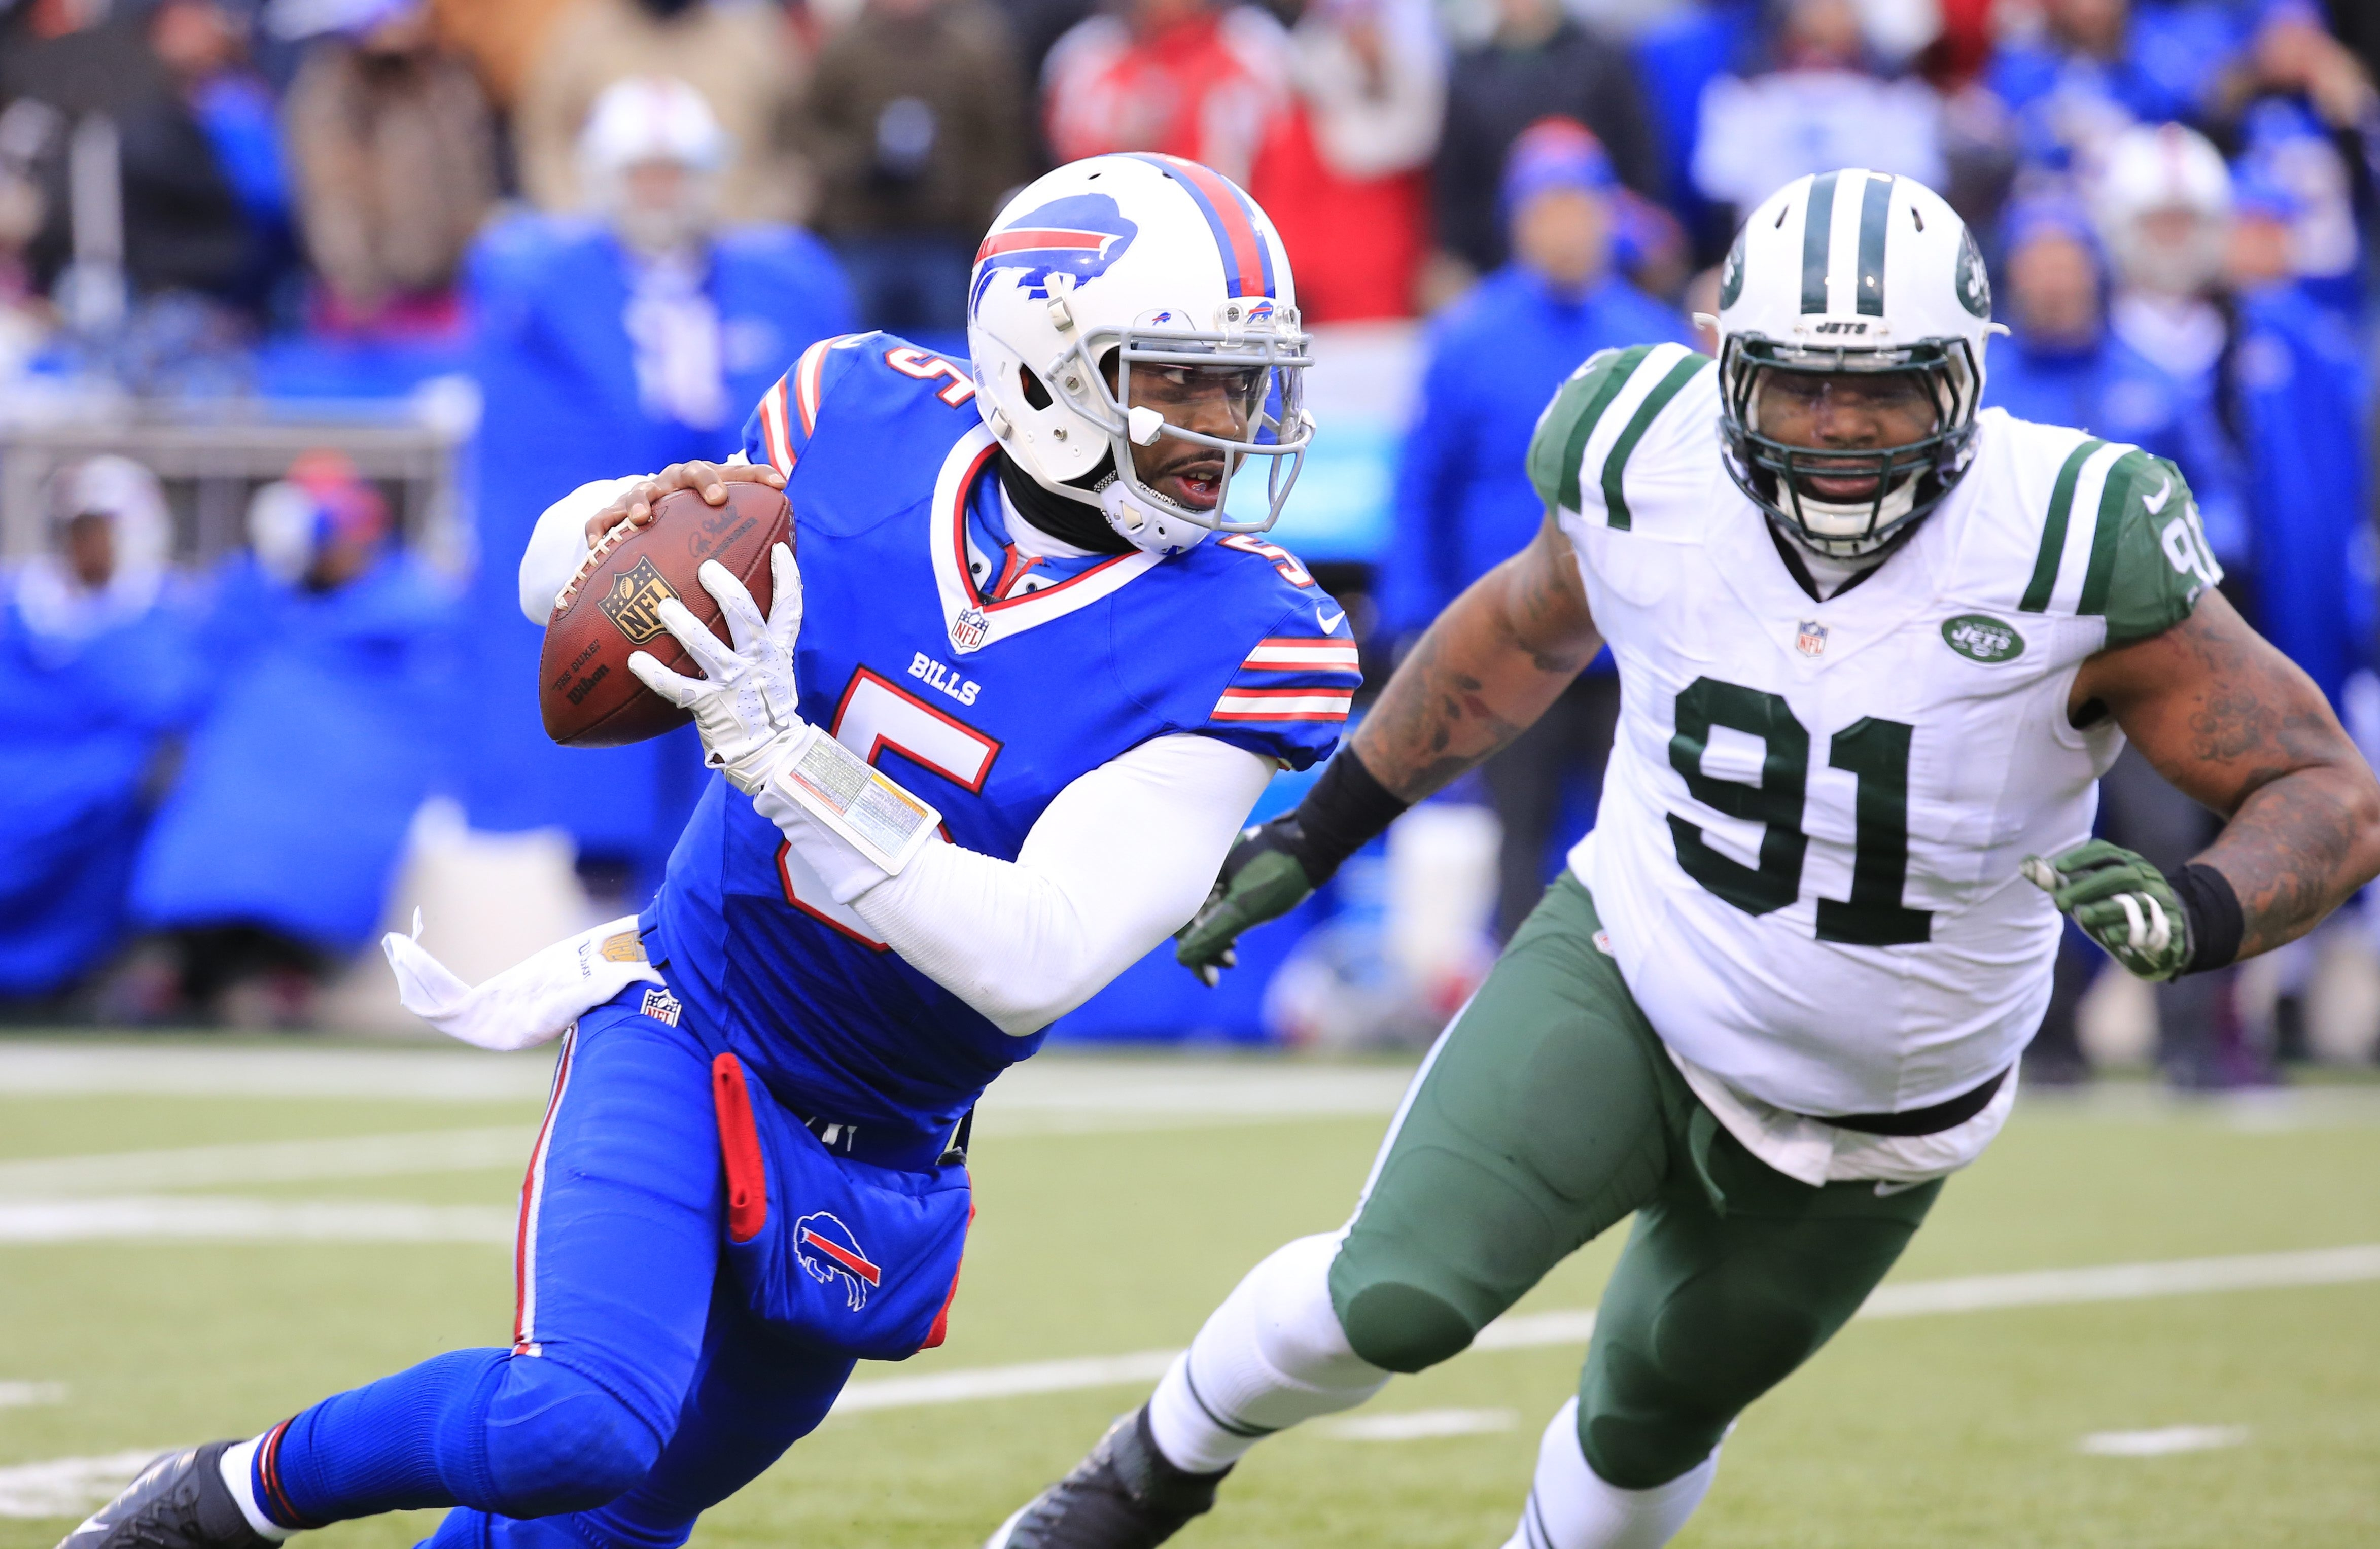 More and more it looks as if the Bills will let quarterback Tyrod Taylor play under the contract that will expire after the 2016 season.